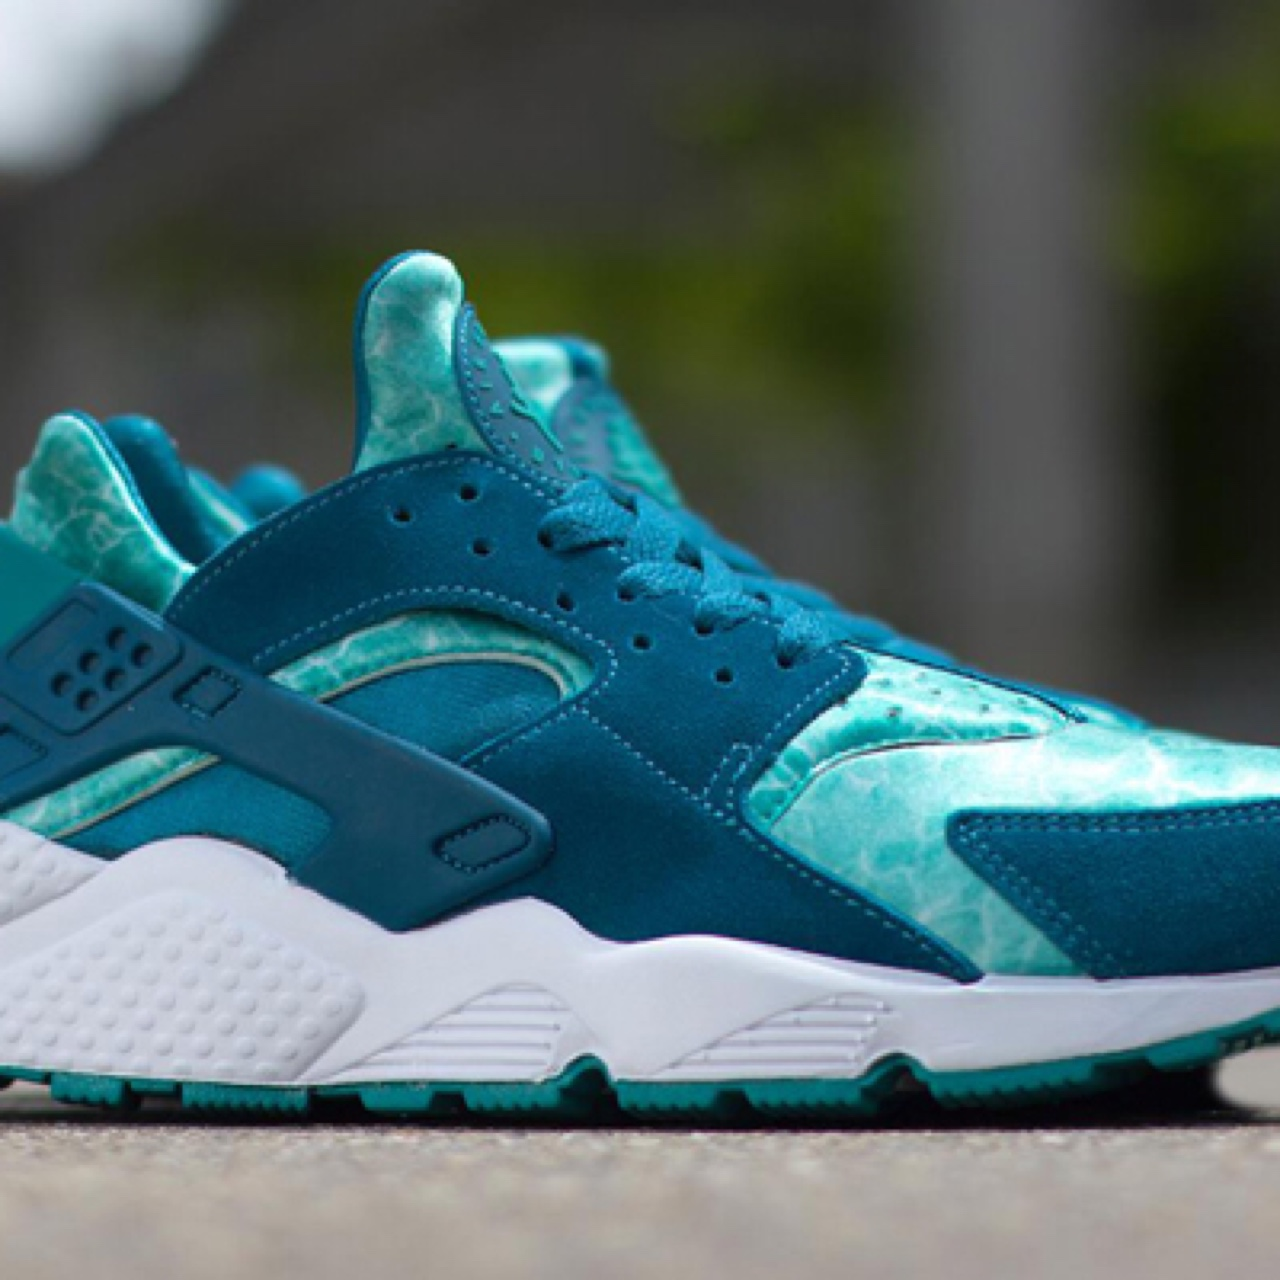 low priced 797d8 a7e5f Nike Air Huaraches, Aqua, Great condition. Size 6.... - Depop